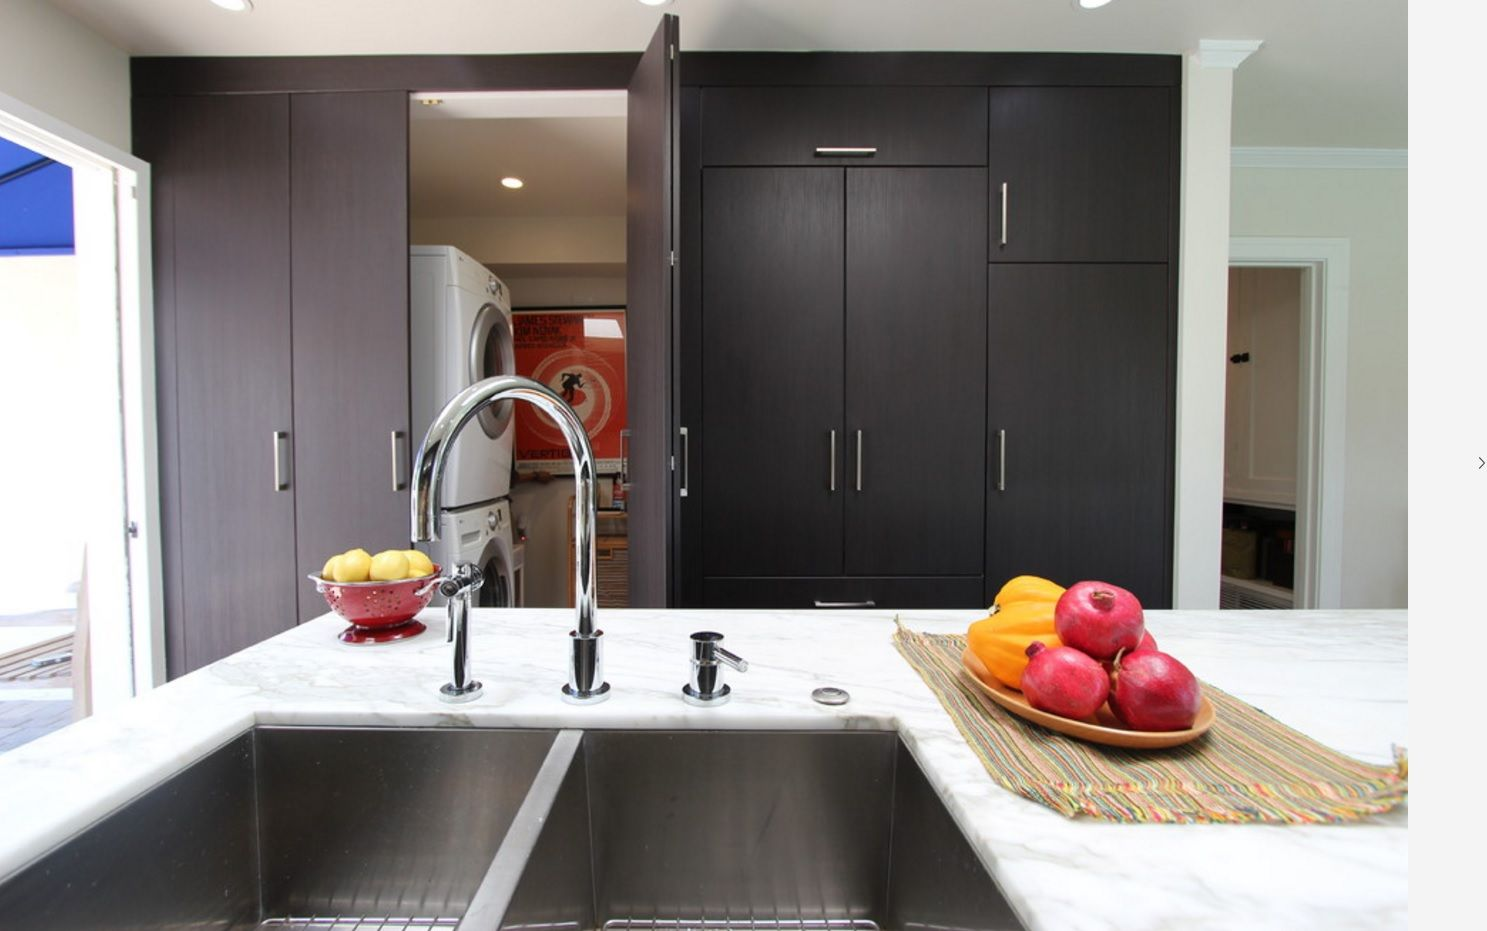 Contrasting dark and white interior with all necessary at the kitchen